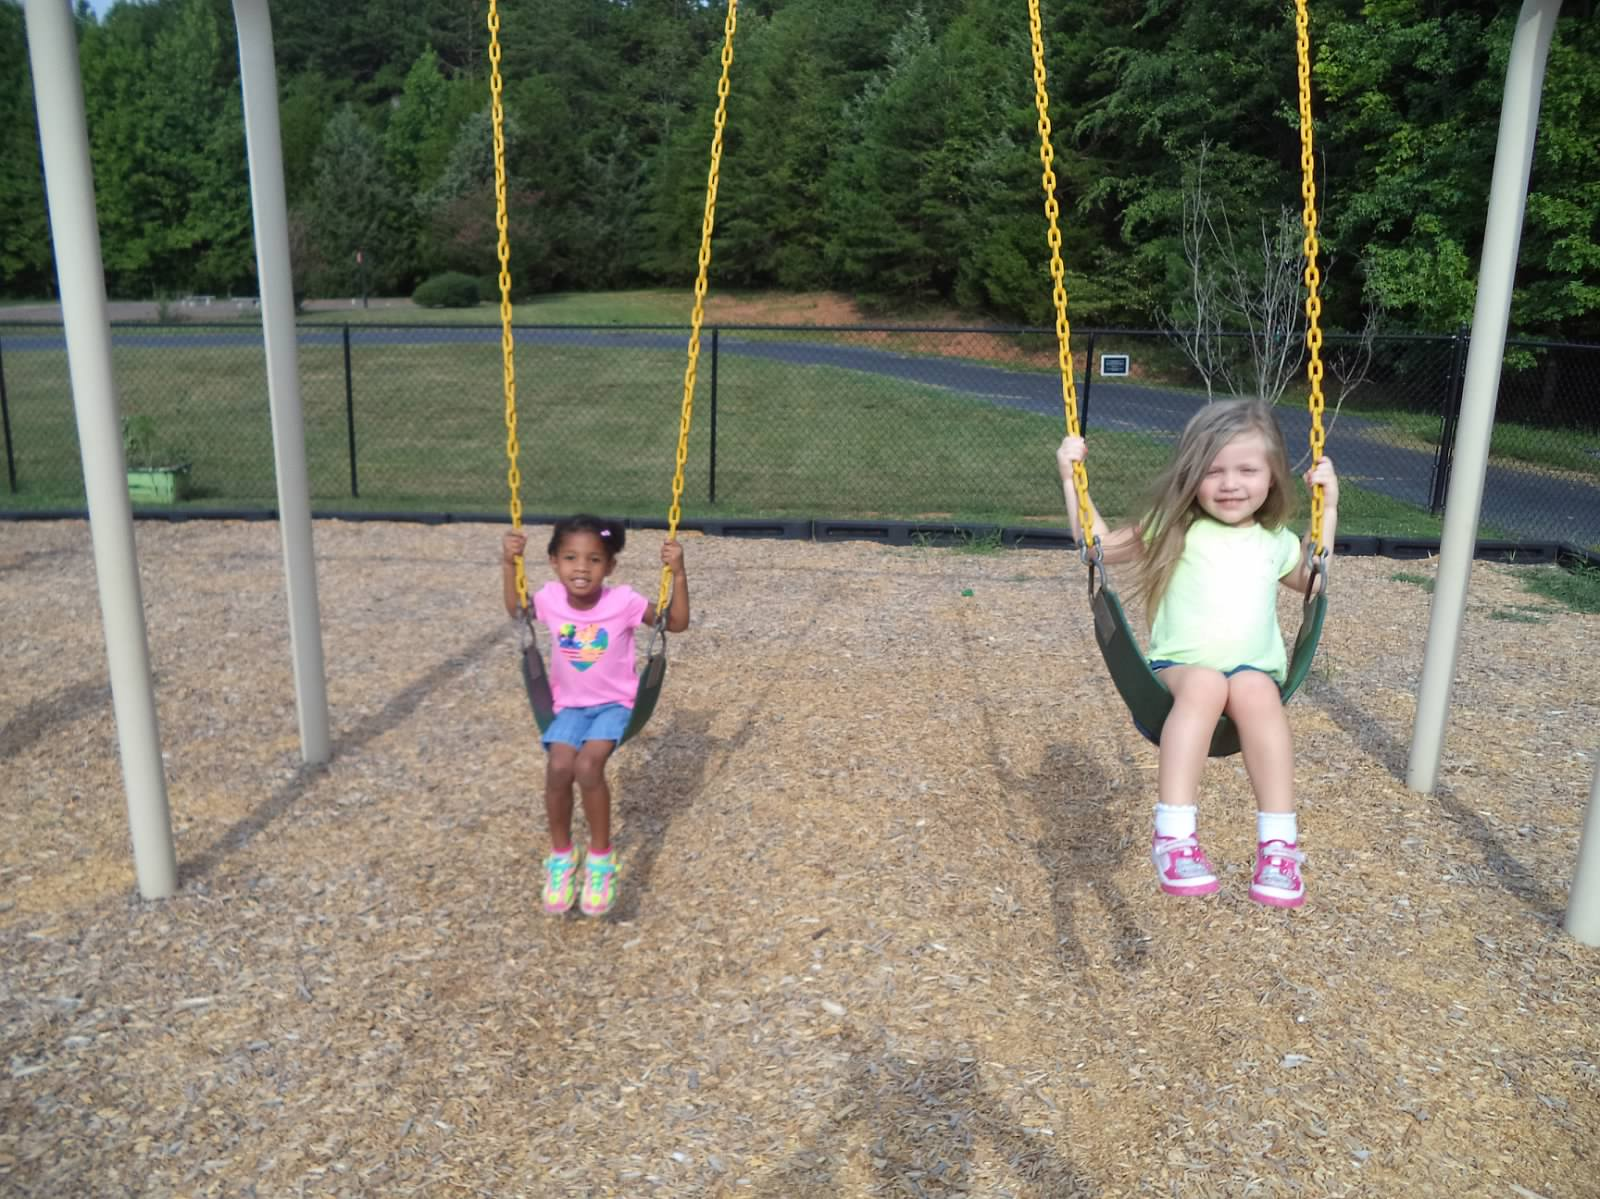 teagan and emily on swings